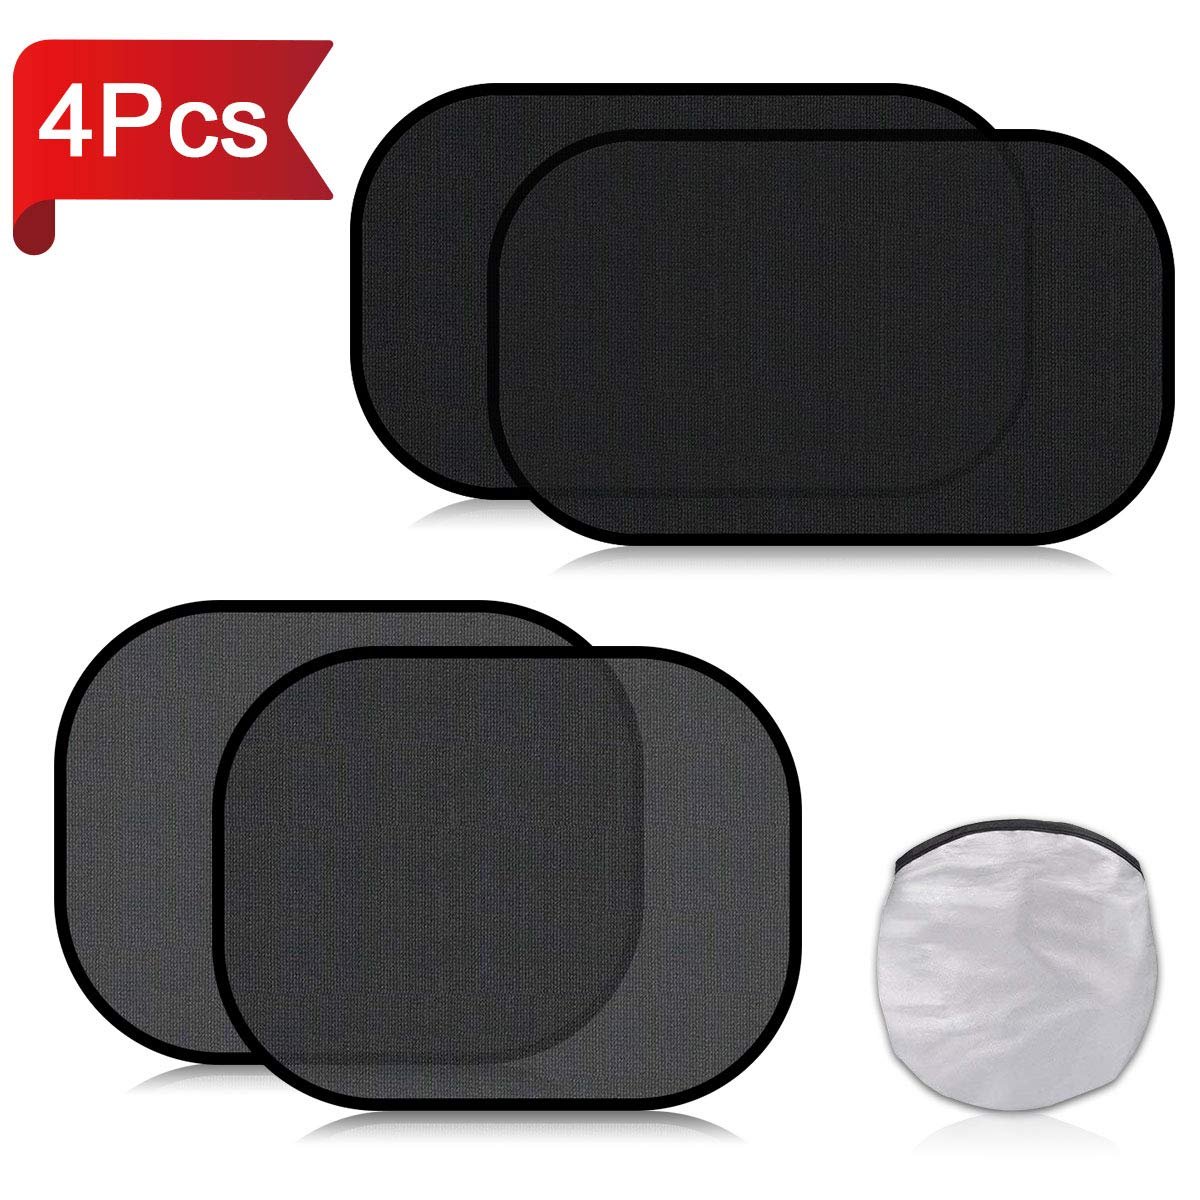 Car Window Shades for Baby 4 Pack, Auto Sun Shiled for Blocking UV Ray Protecting Kids Pets Family- Baby Car Side Window Sun Shades- with 2 Size: 2 Transparent & 2 Semi-Transparent Sunshades